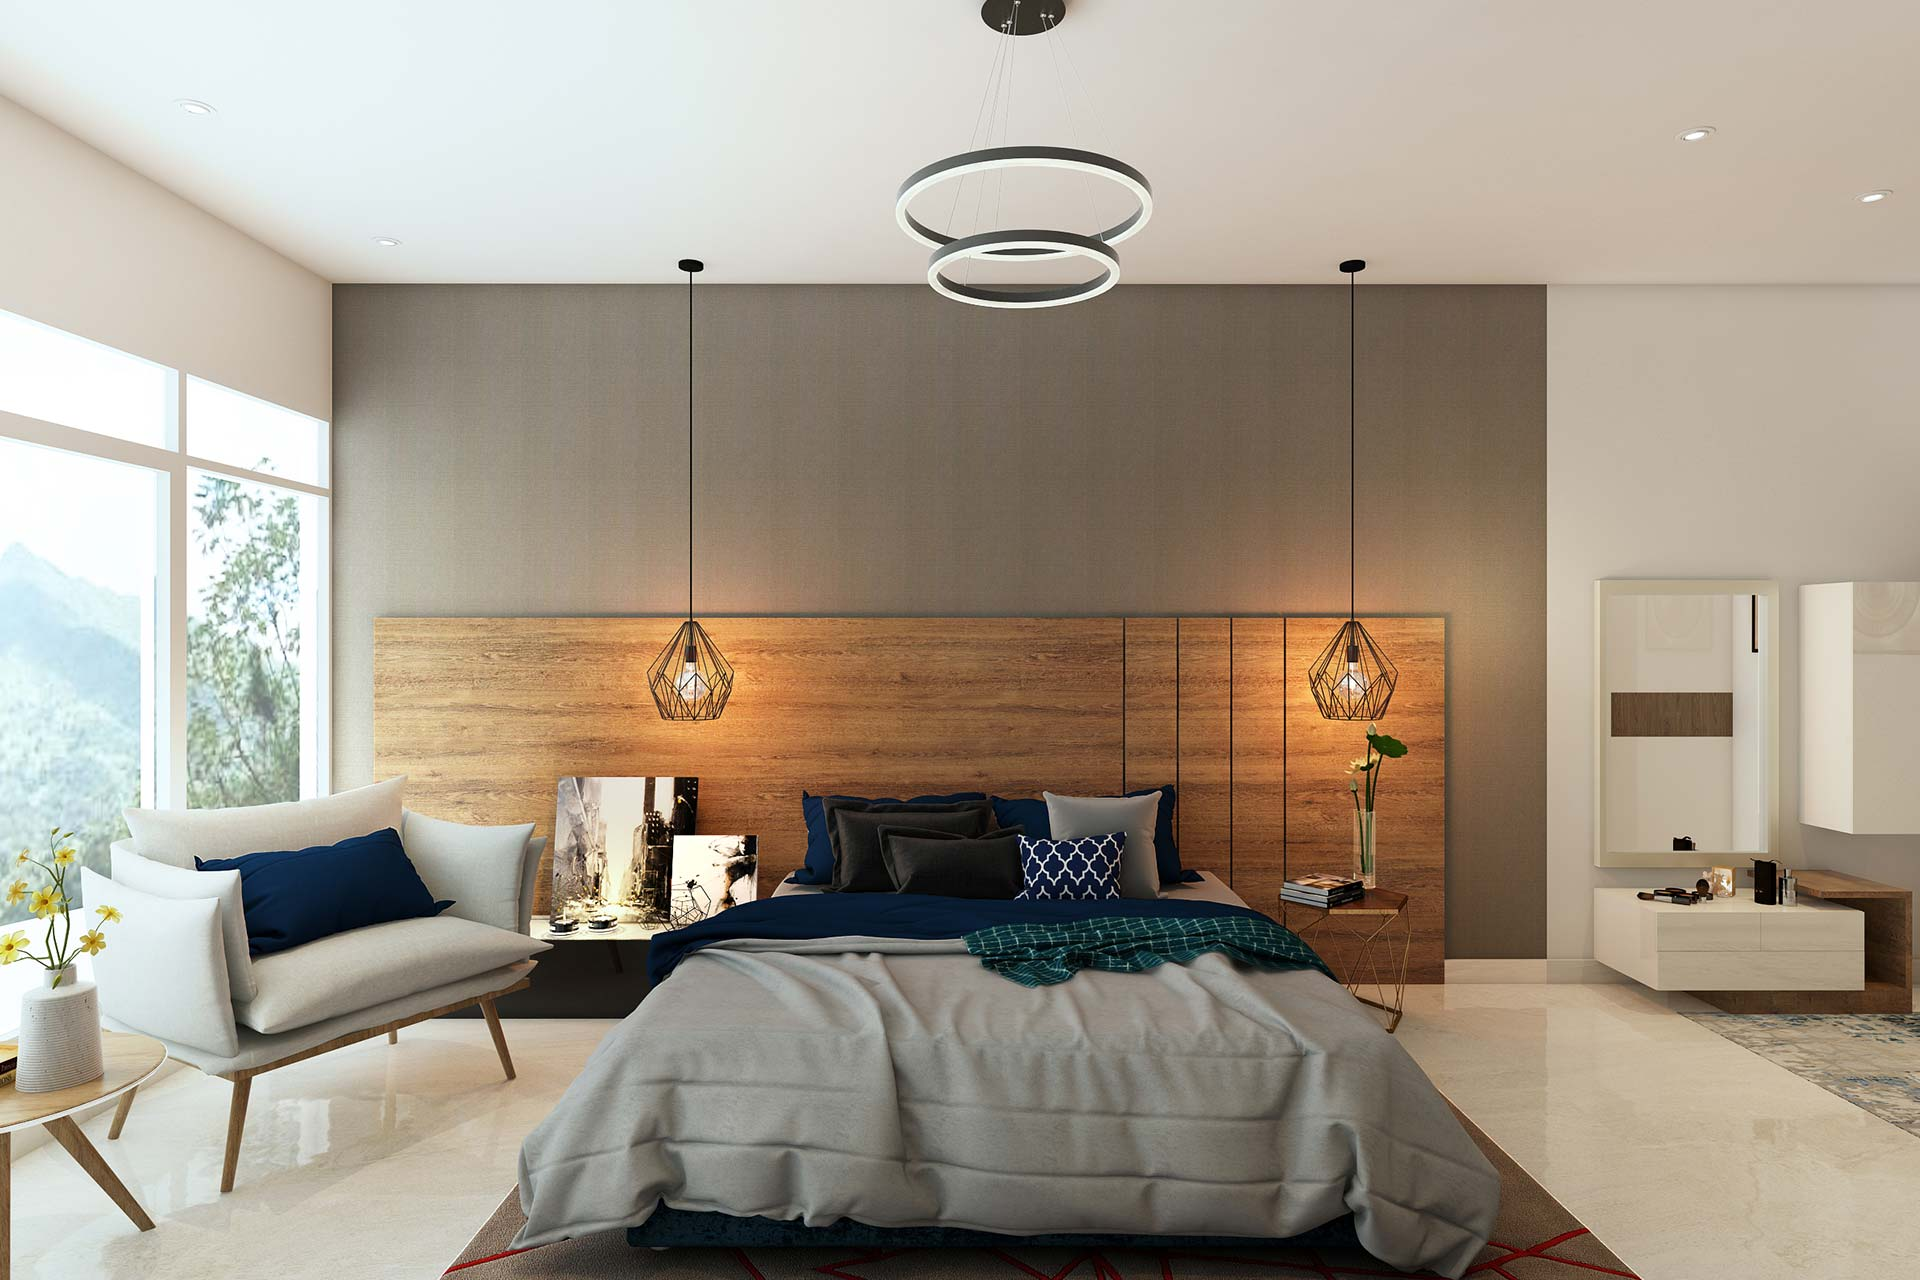 Good Vibes With Good Lights! 7 Lighting Ideas For Your Bedroom